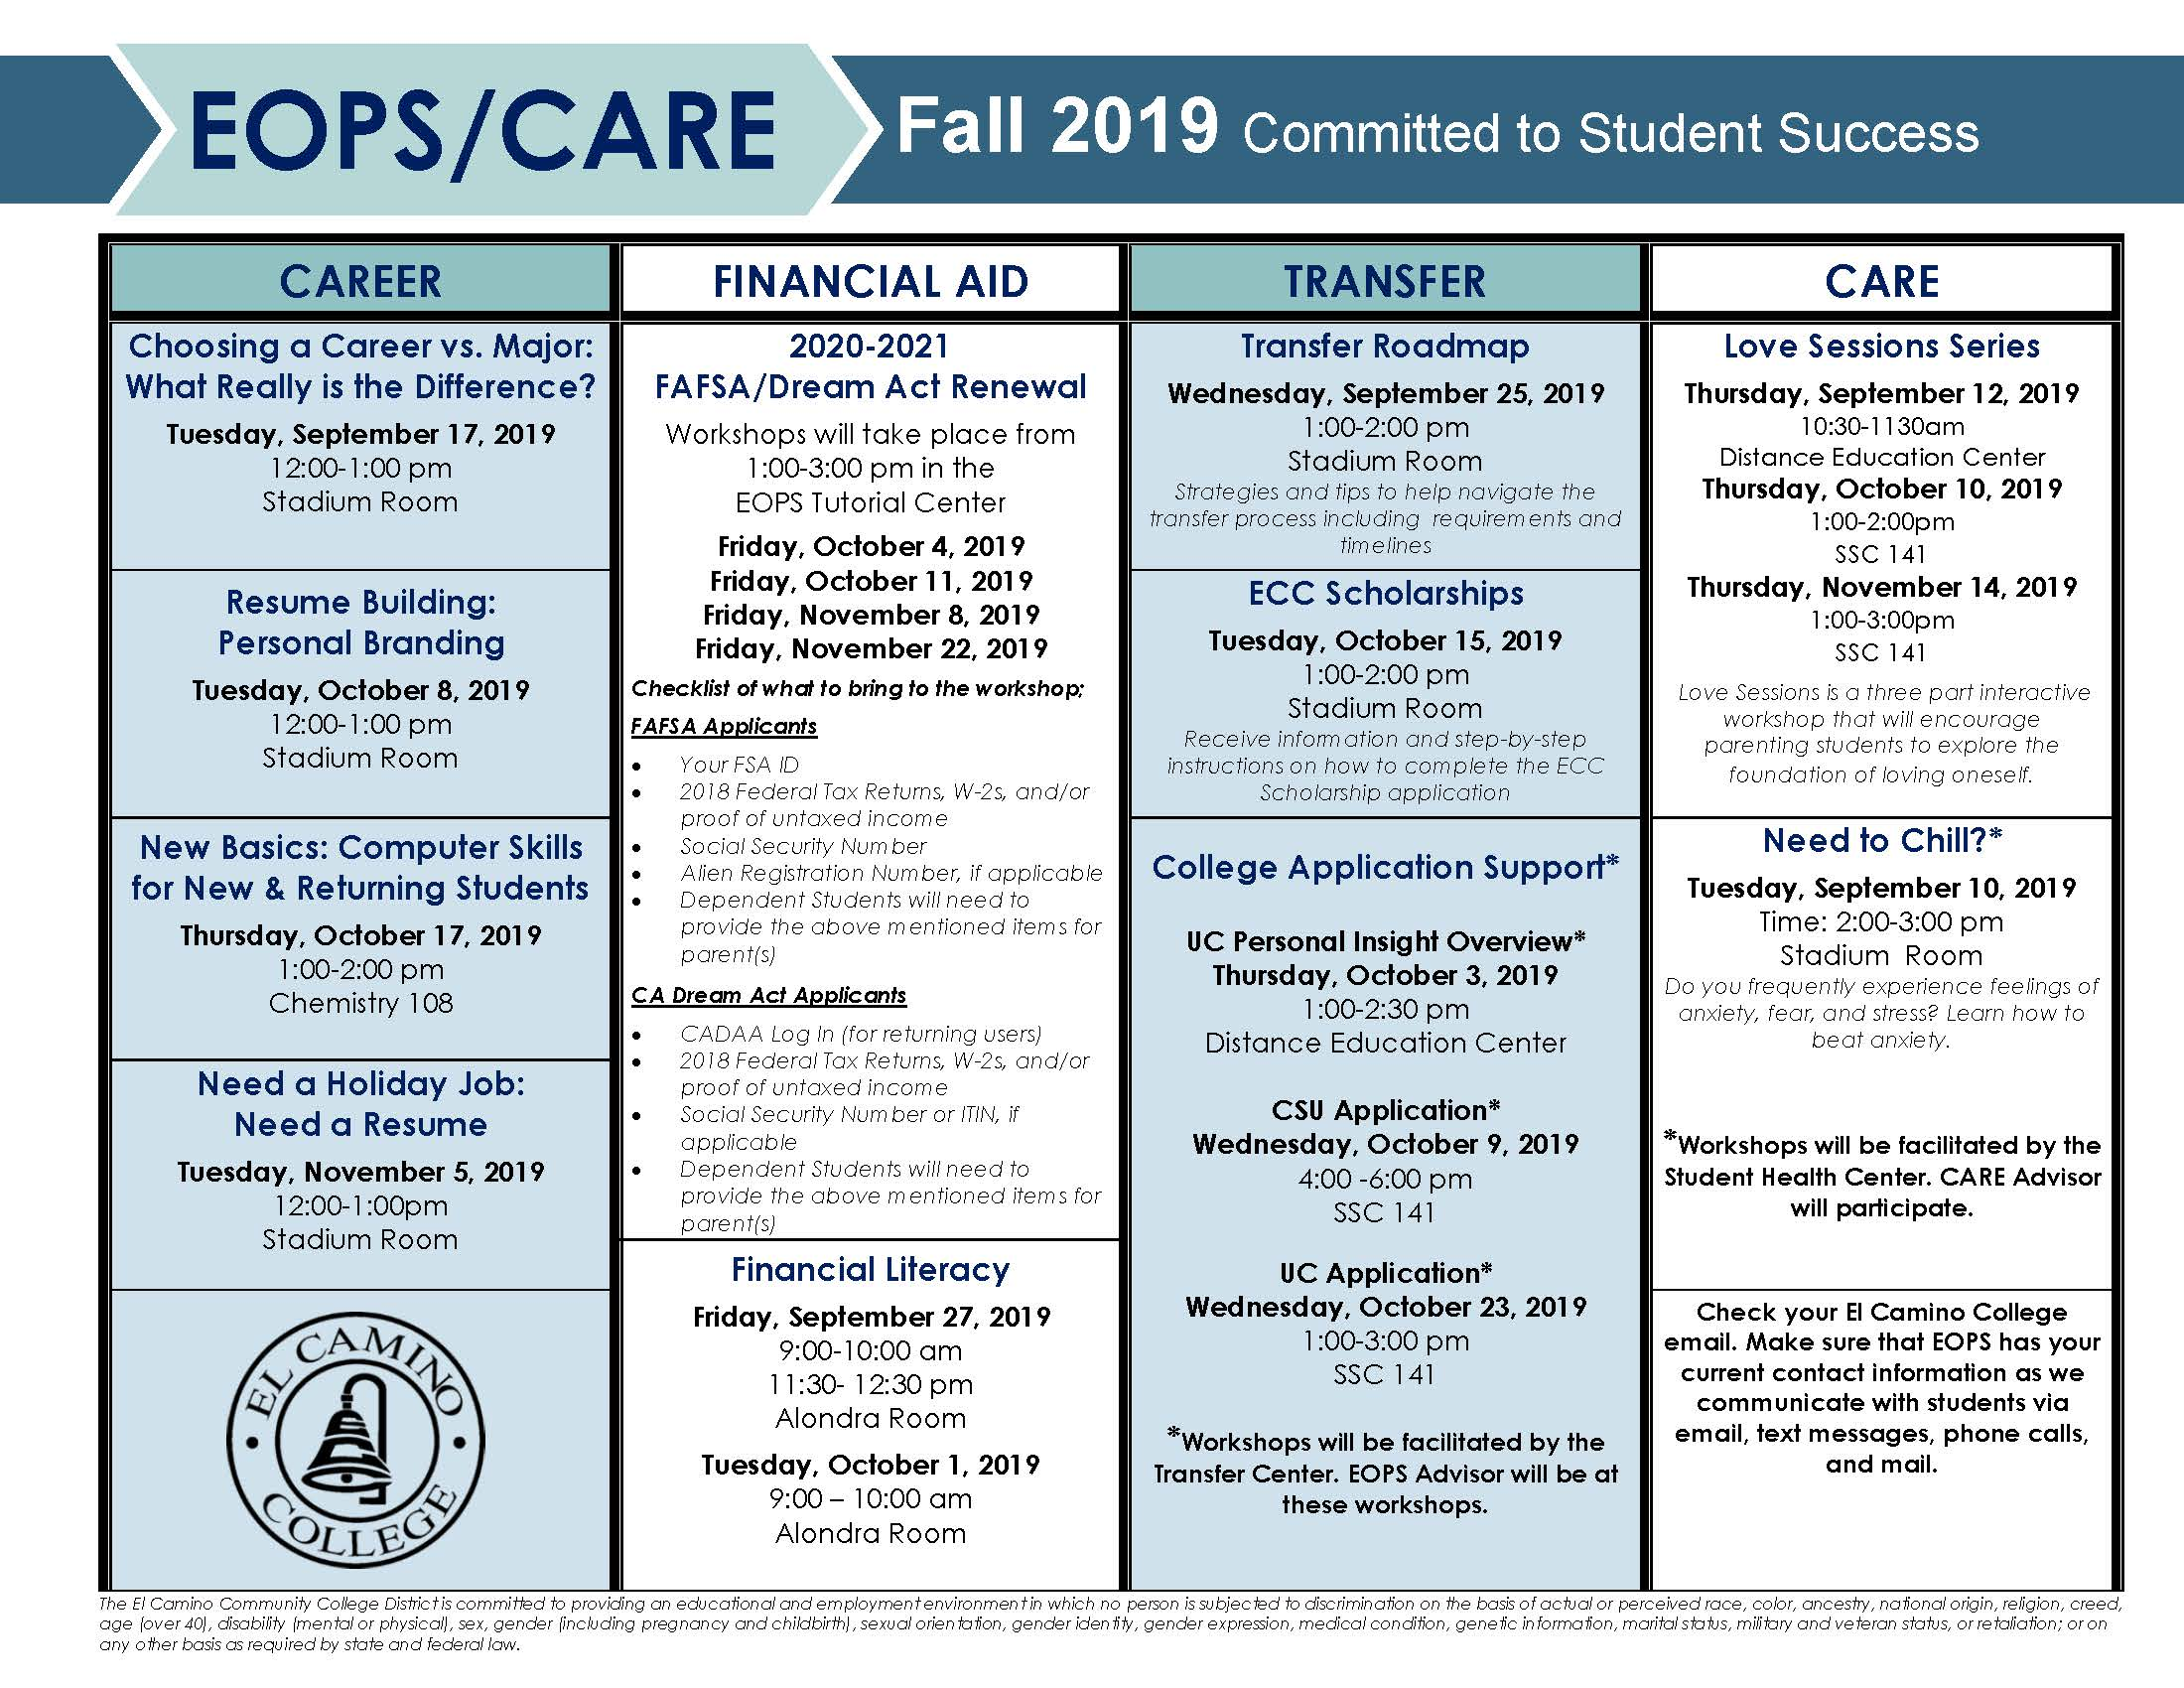 Fall 2019 Workshops